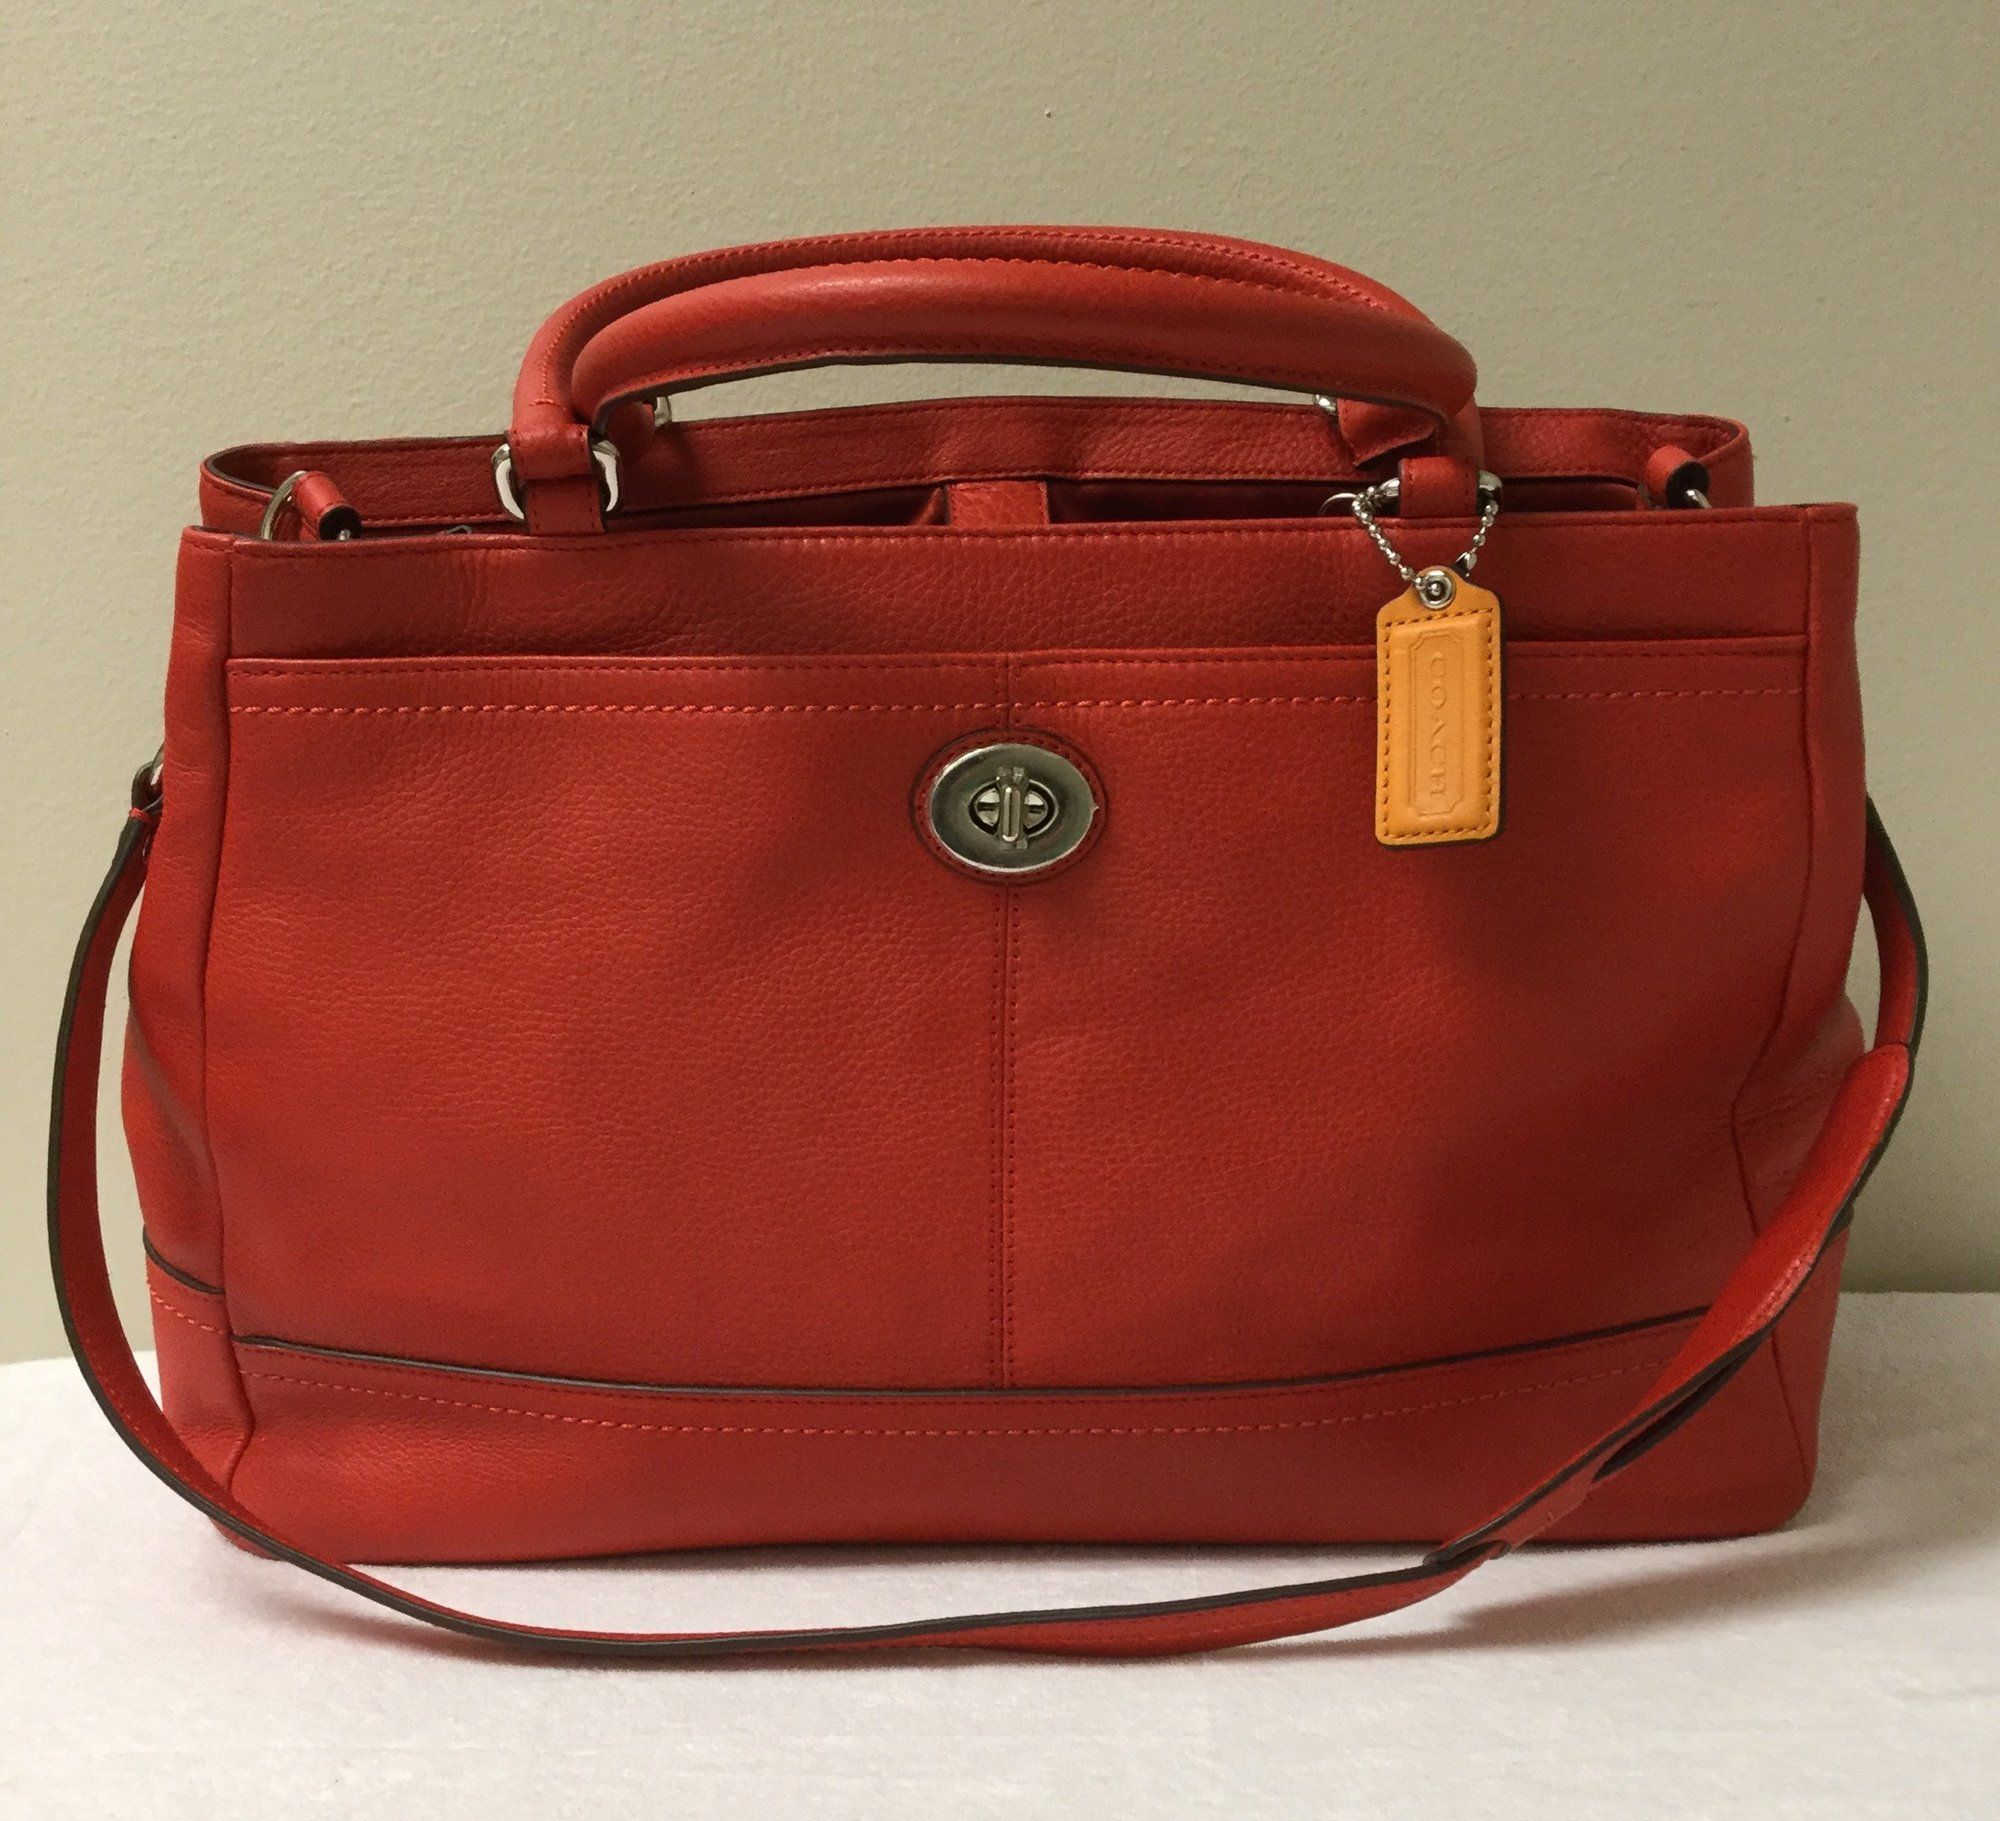 Coach 3 Handle Leather Messenger<br /> Size M/L<br /> Red<br /> $117.00